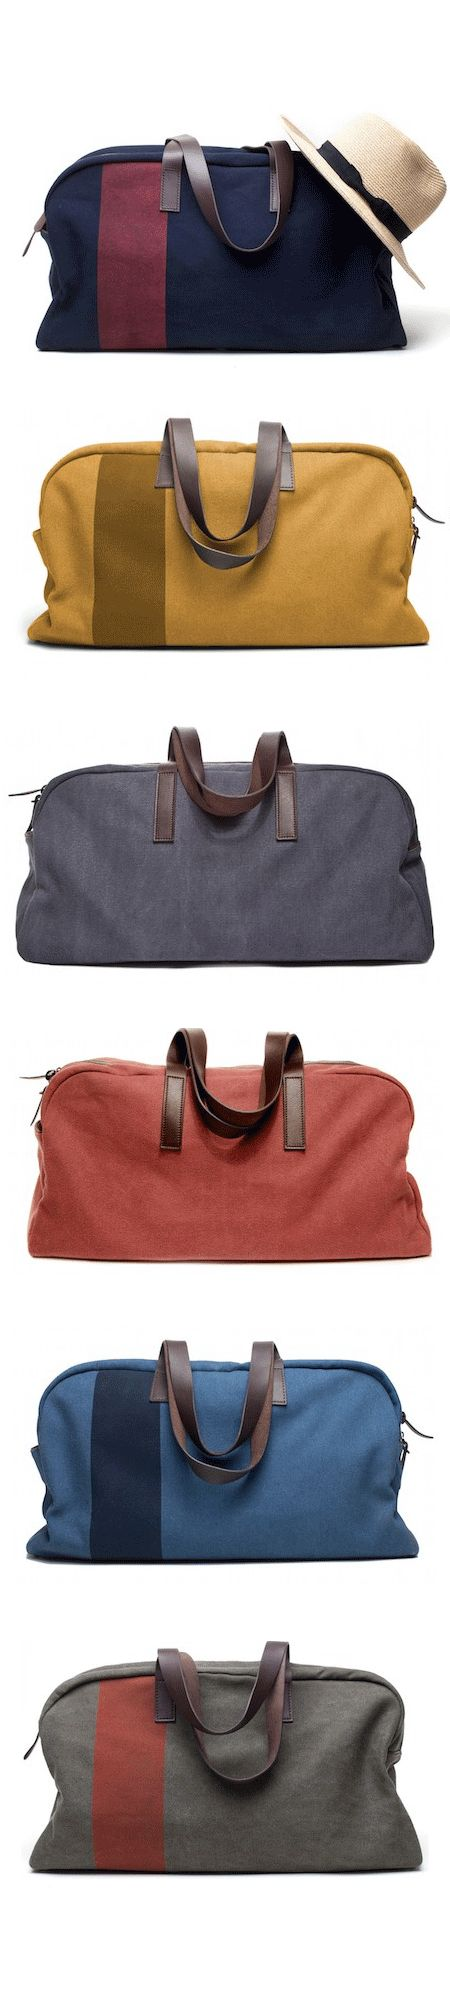 Weekender Bag Choice #2: Everlane